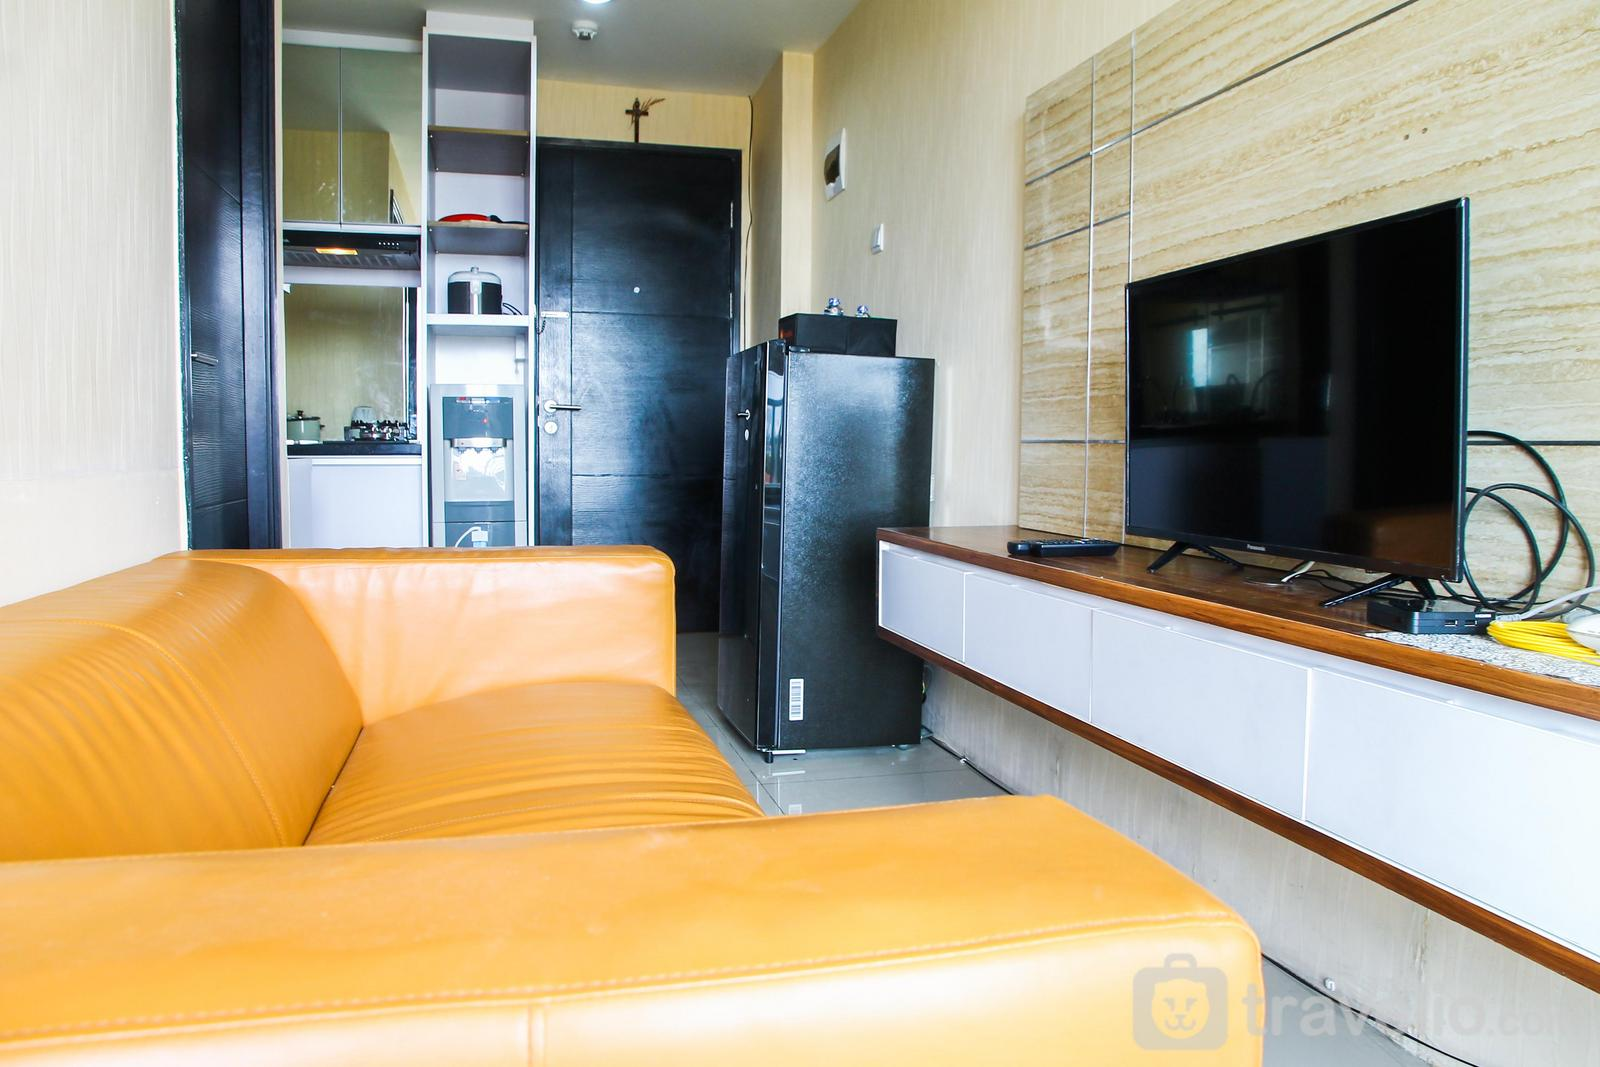 Apartemen Belmont Residence Puri - Cozy and Elegant 1BR Apartment Belmont Residence By Travelio